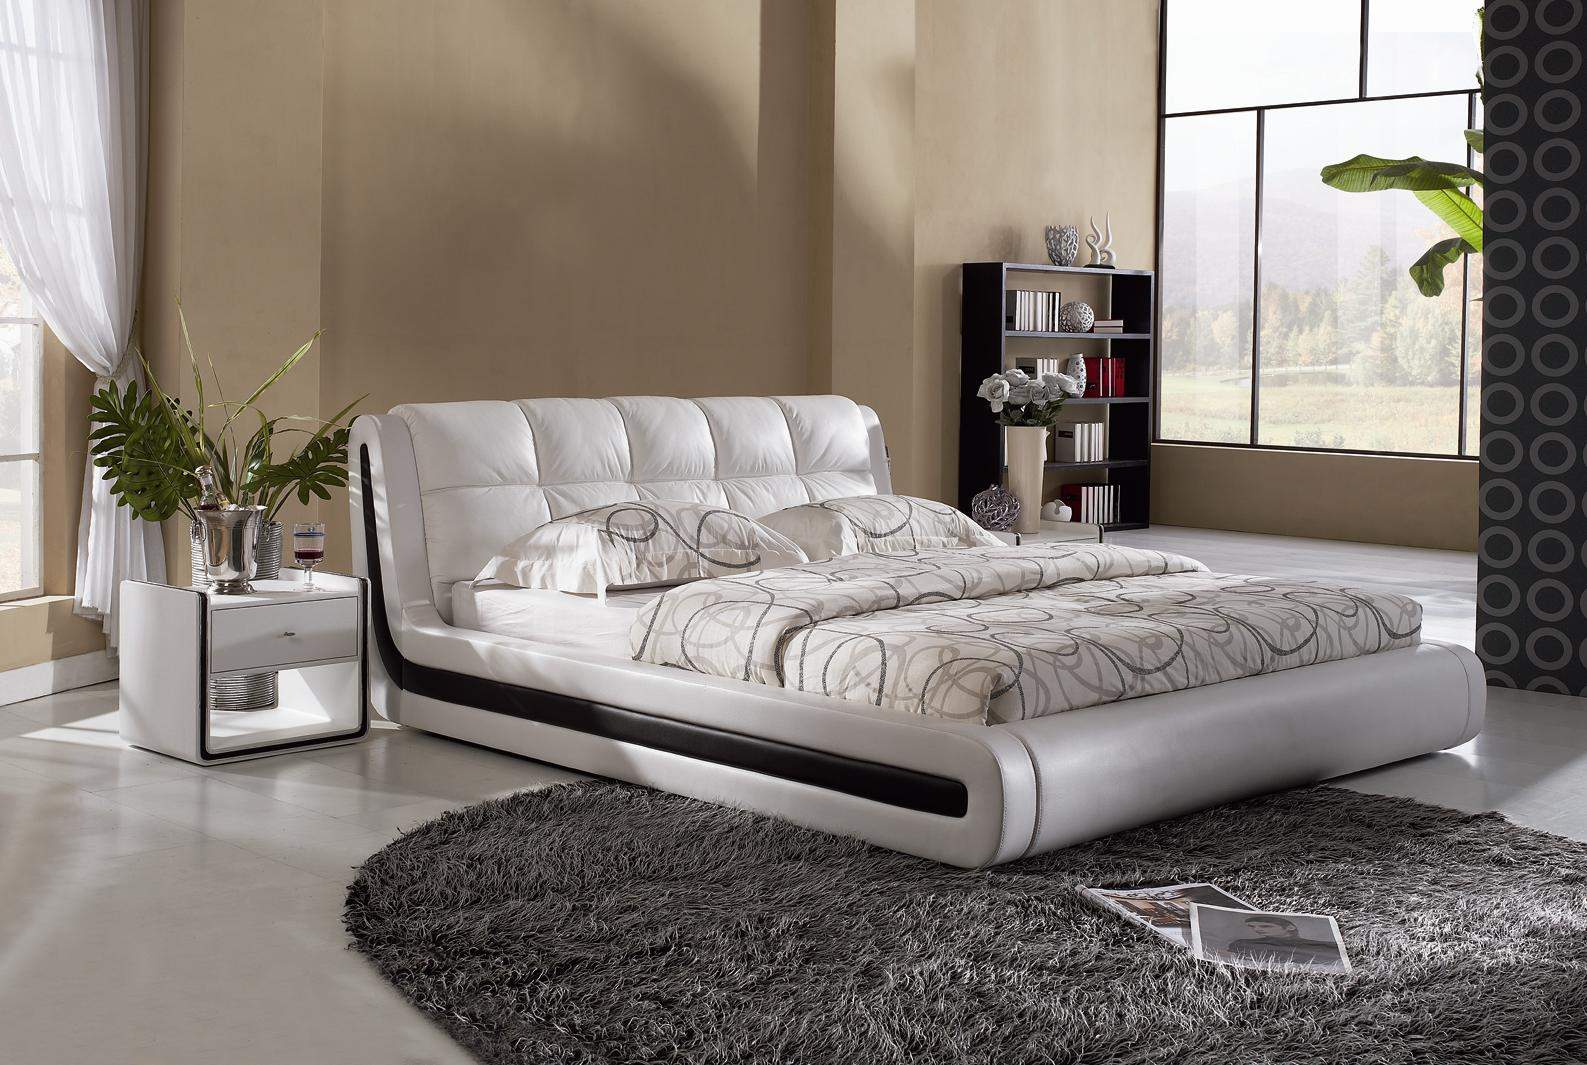 Low Floor Bed Designs Ideas